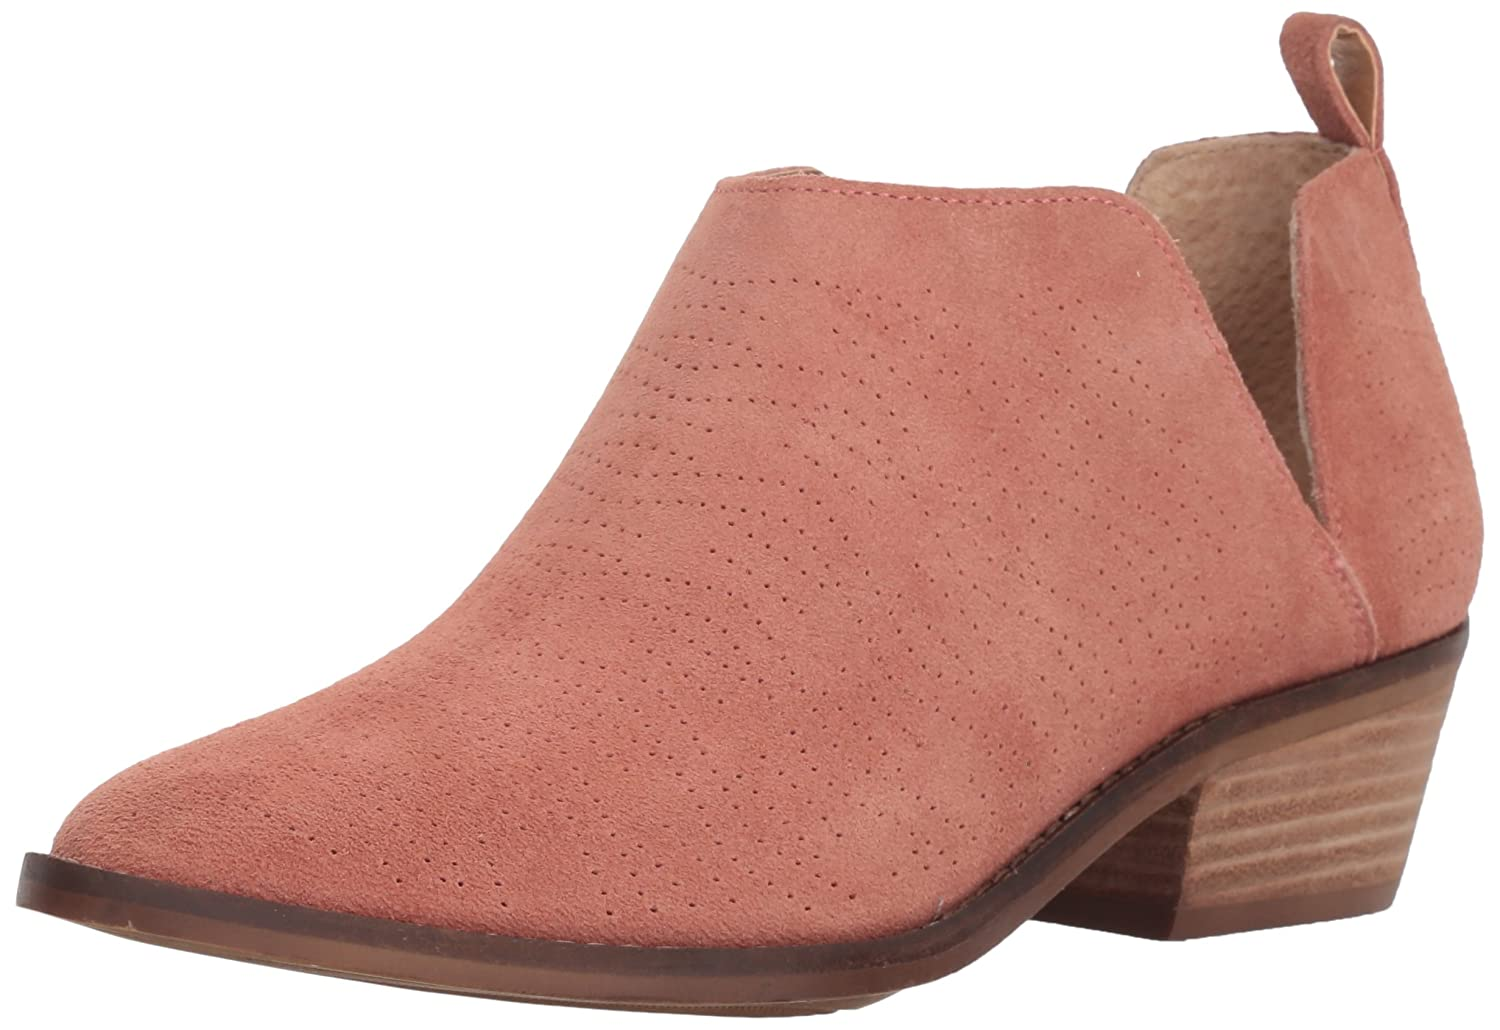 Lucky Brand Women's Fayth Ankle Boot B077JHT742 12 M US|Canyon Rose